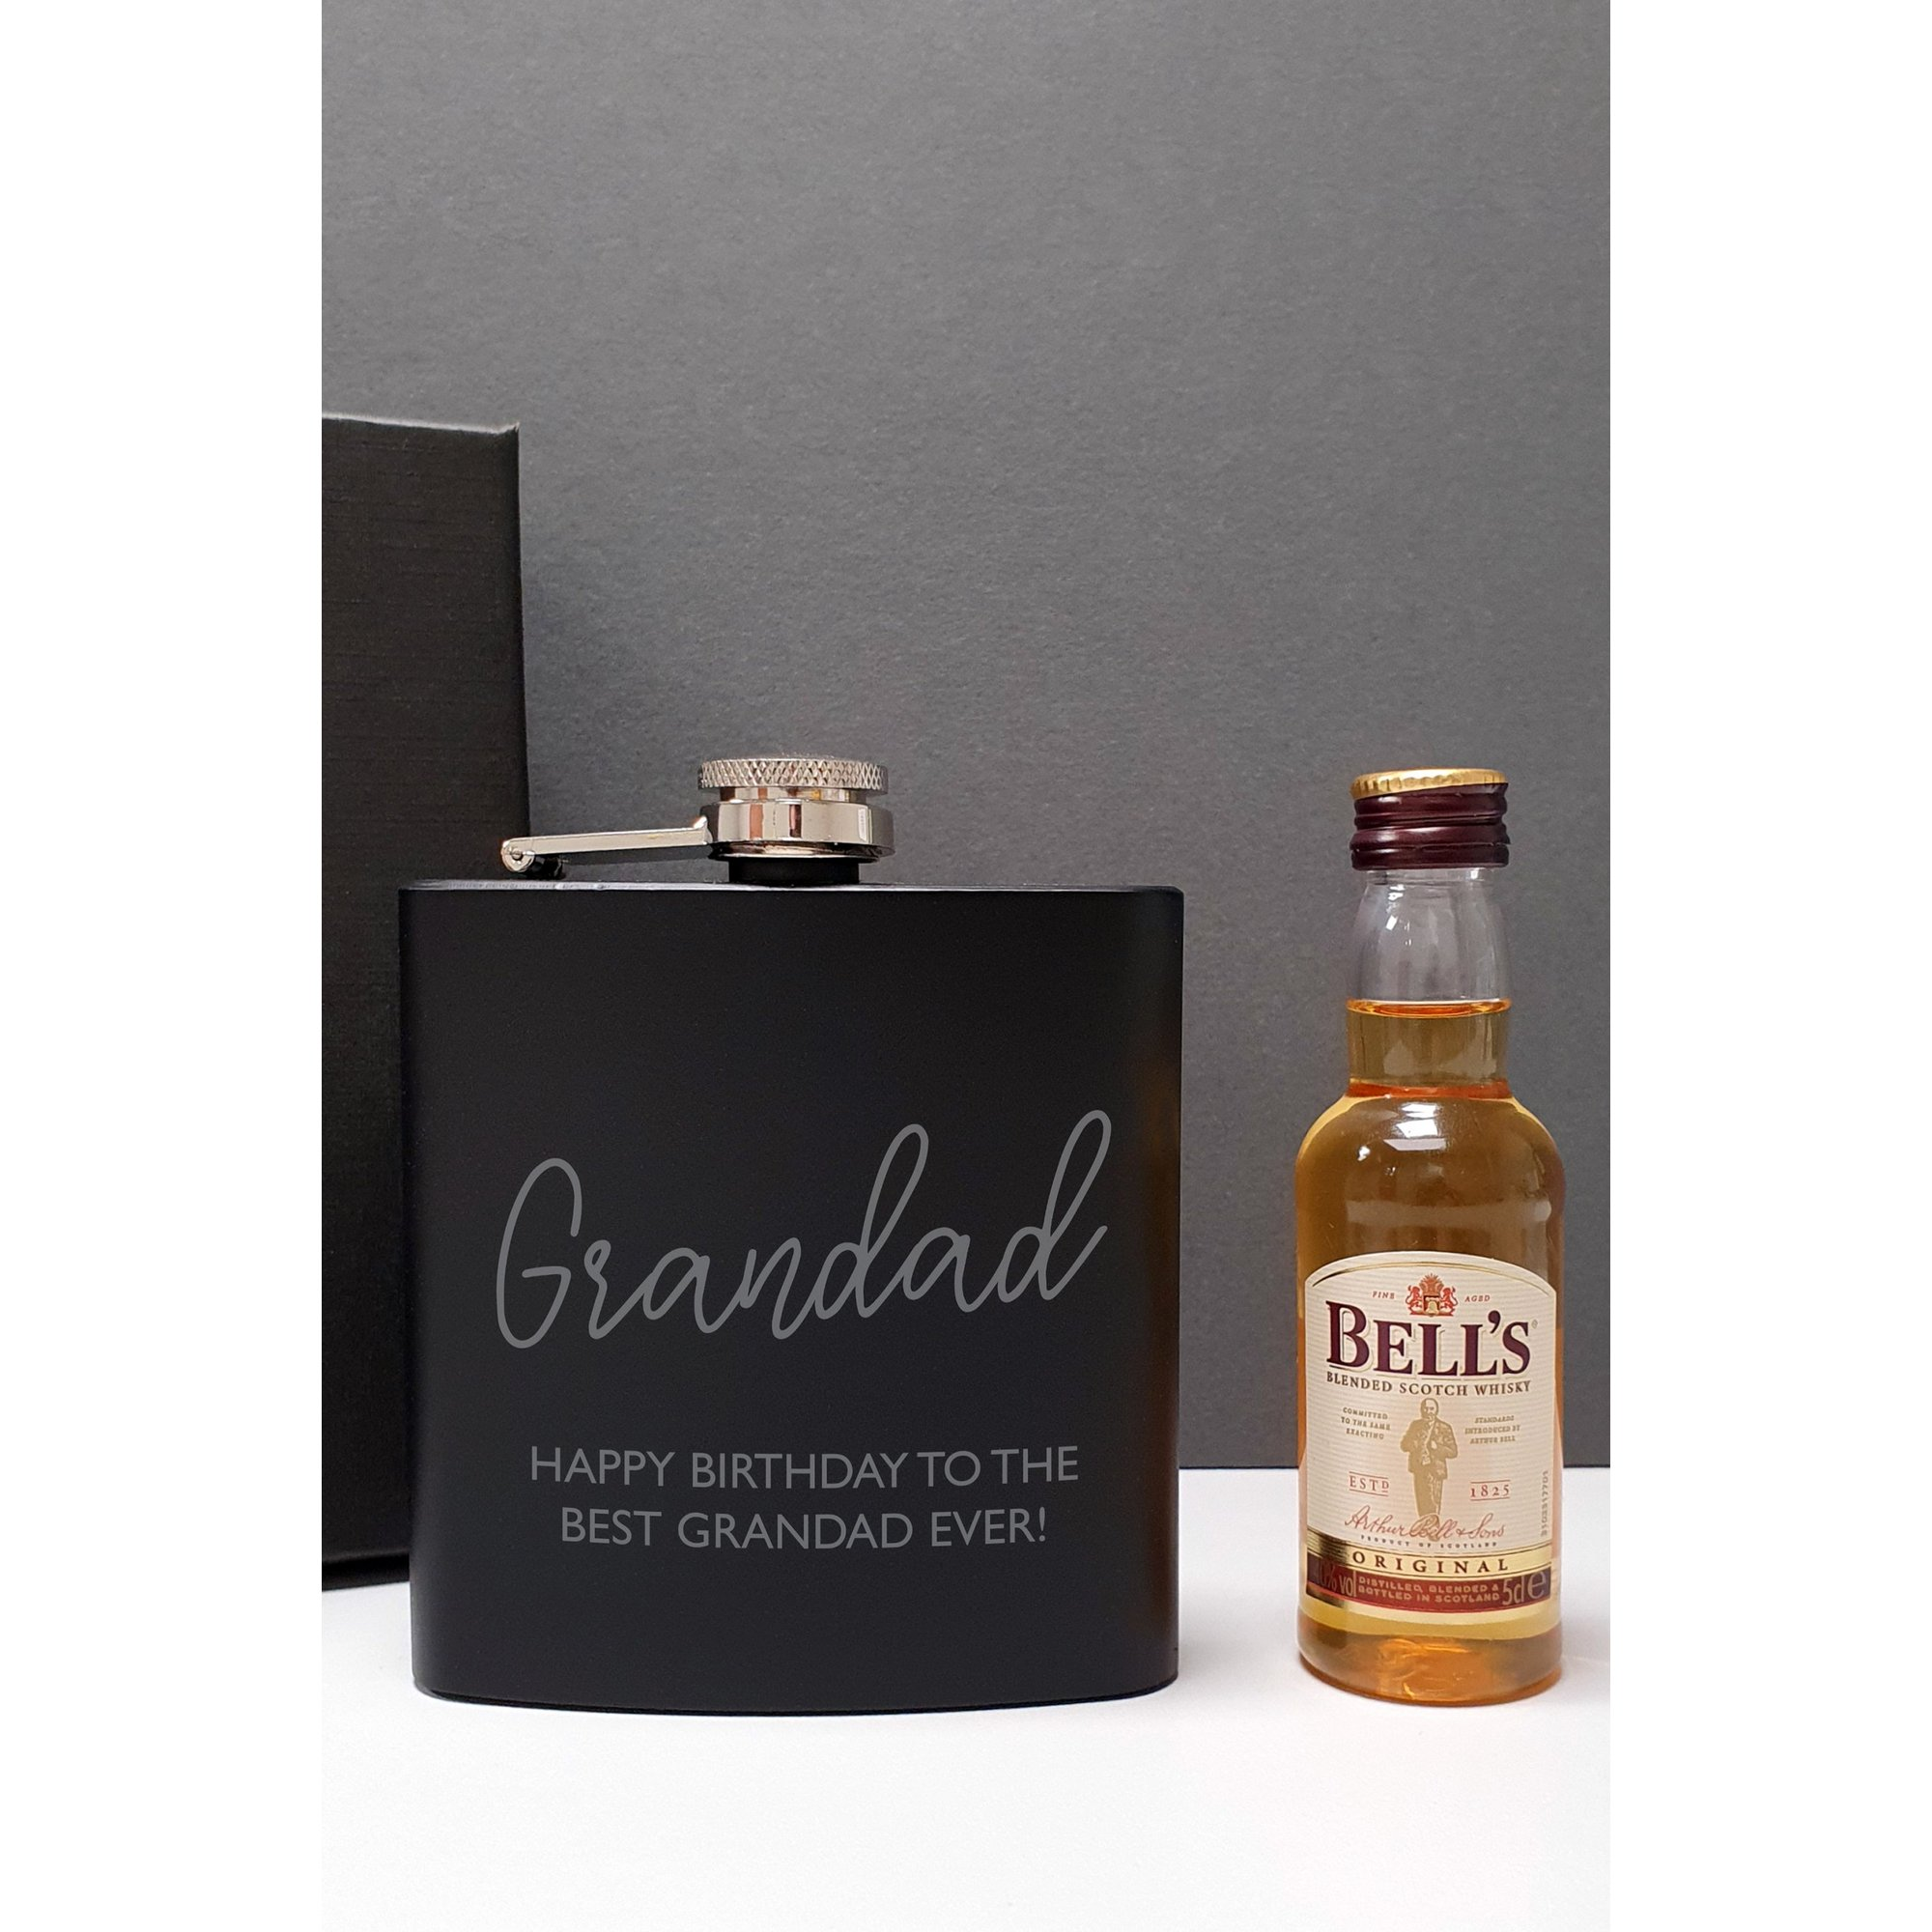 Image of Personalised Black Hip Flask and Miniature Bells